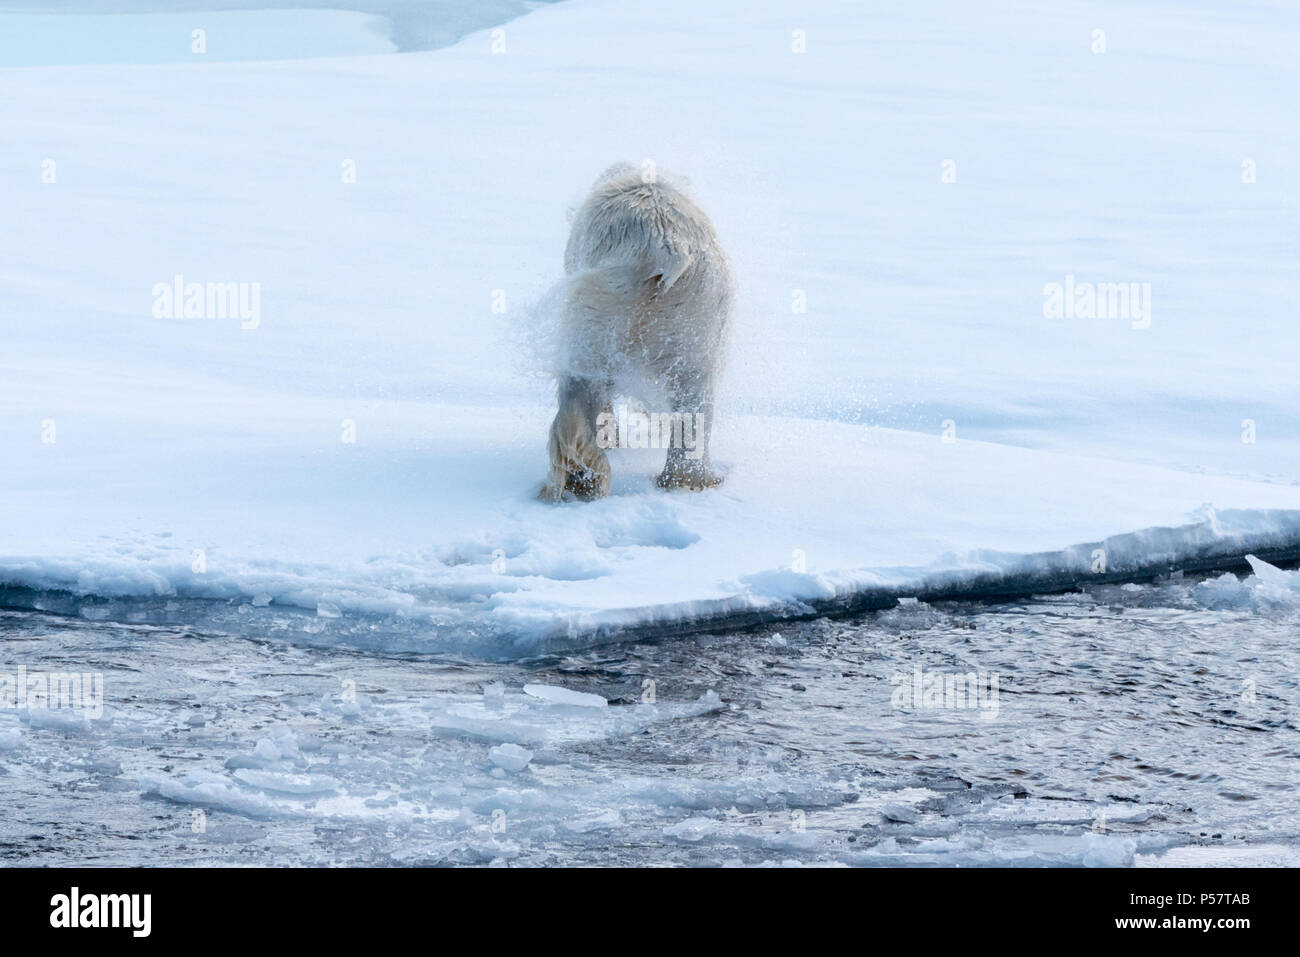 Polar Bear shaking after emerging from water - Stock Image